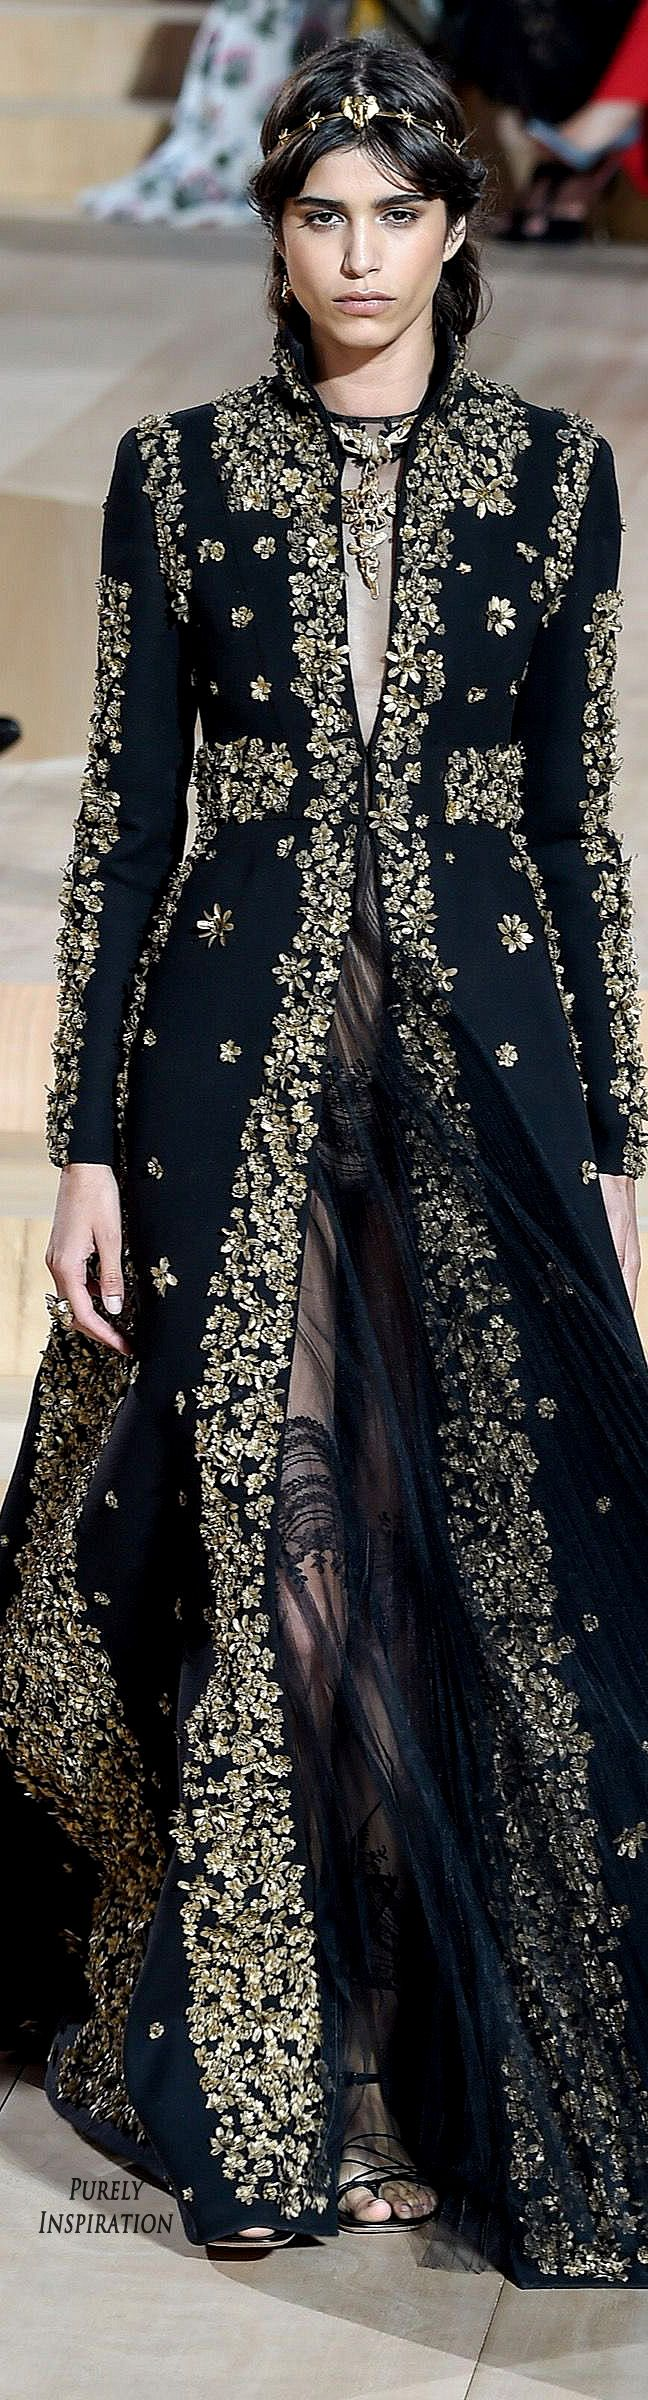 Valentino ~ Haute Couture Allover Silver Applique on Black Full length Top Coat 2015